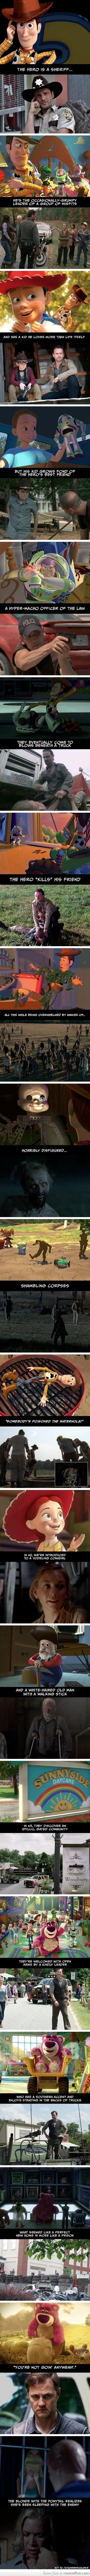 The Walking Dead and Toy Story similarities. I will never watch with the same way again...